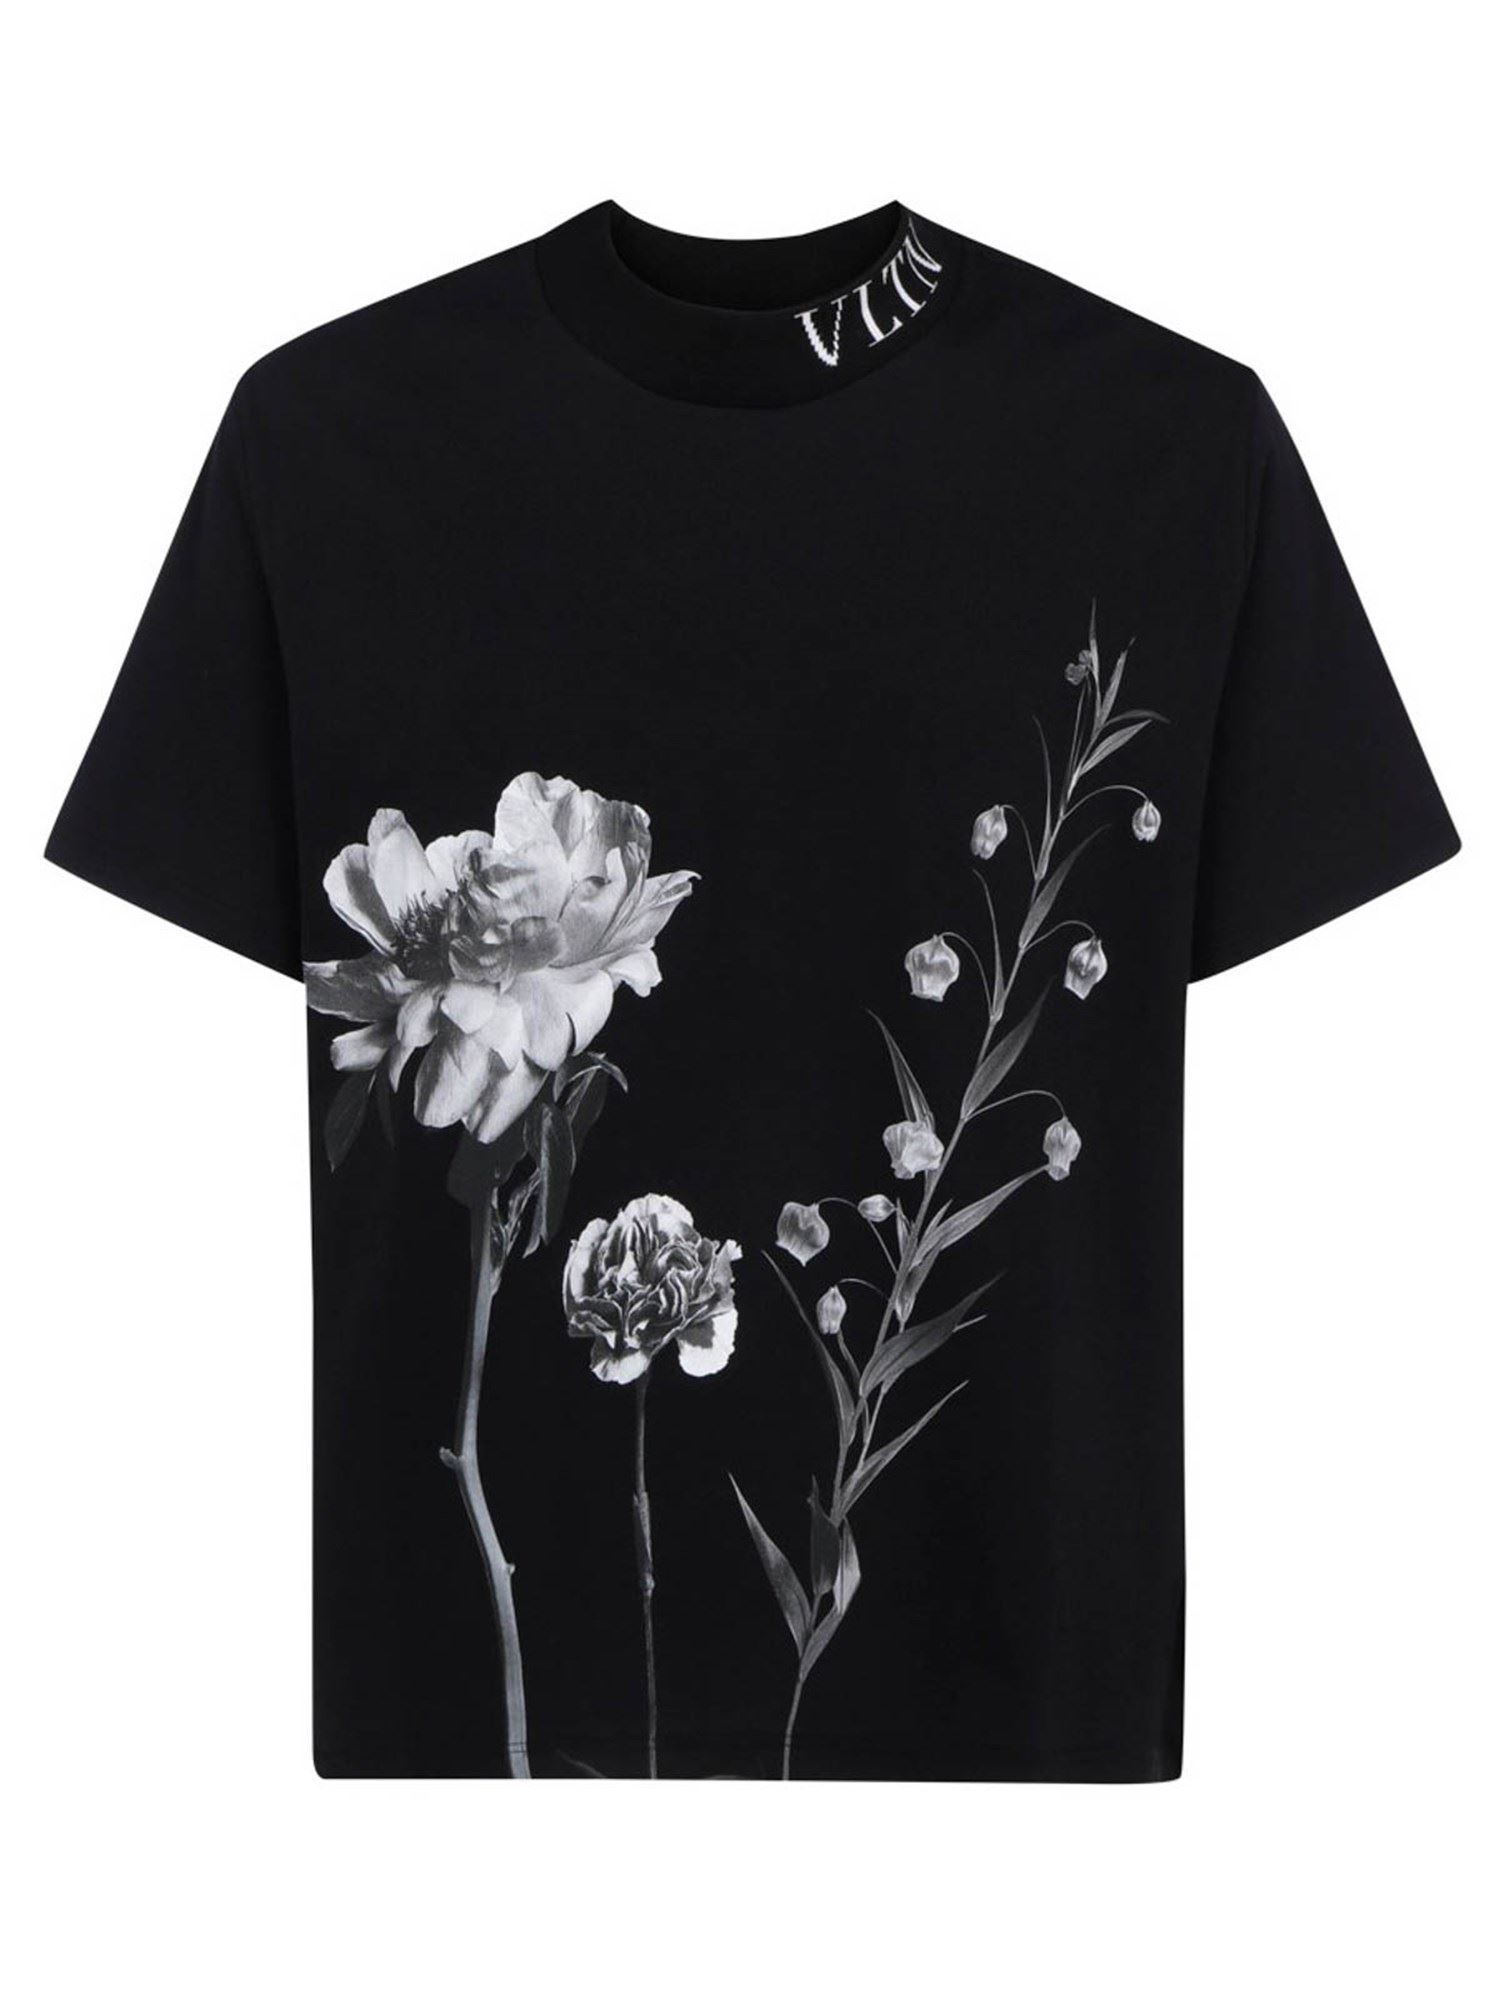 Valentino FLORAL PRINTED T-SHIRT IN BLACK